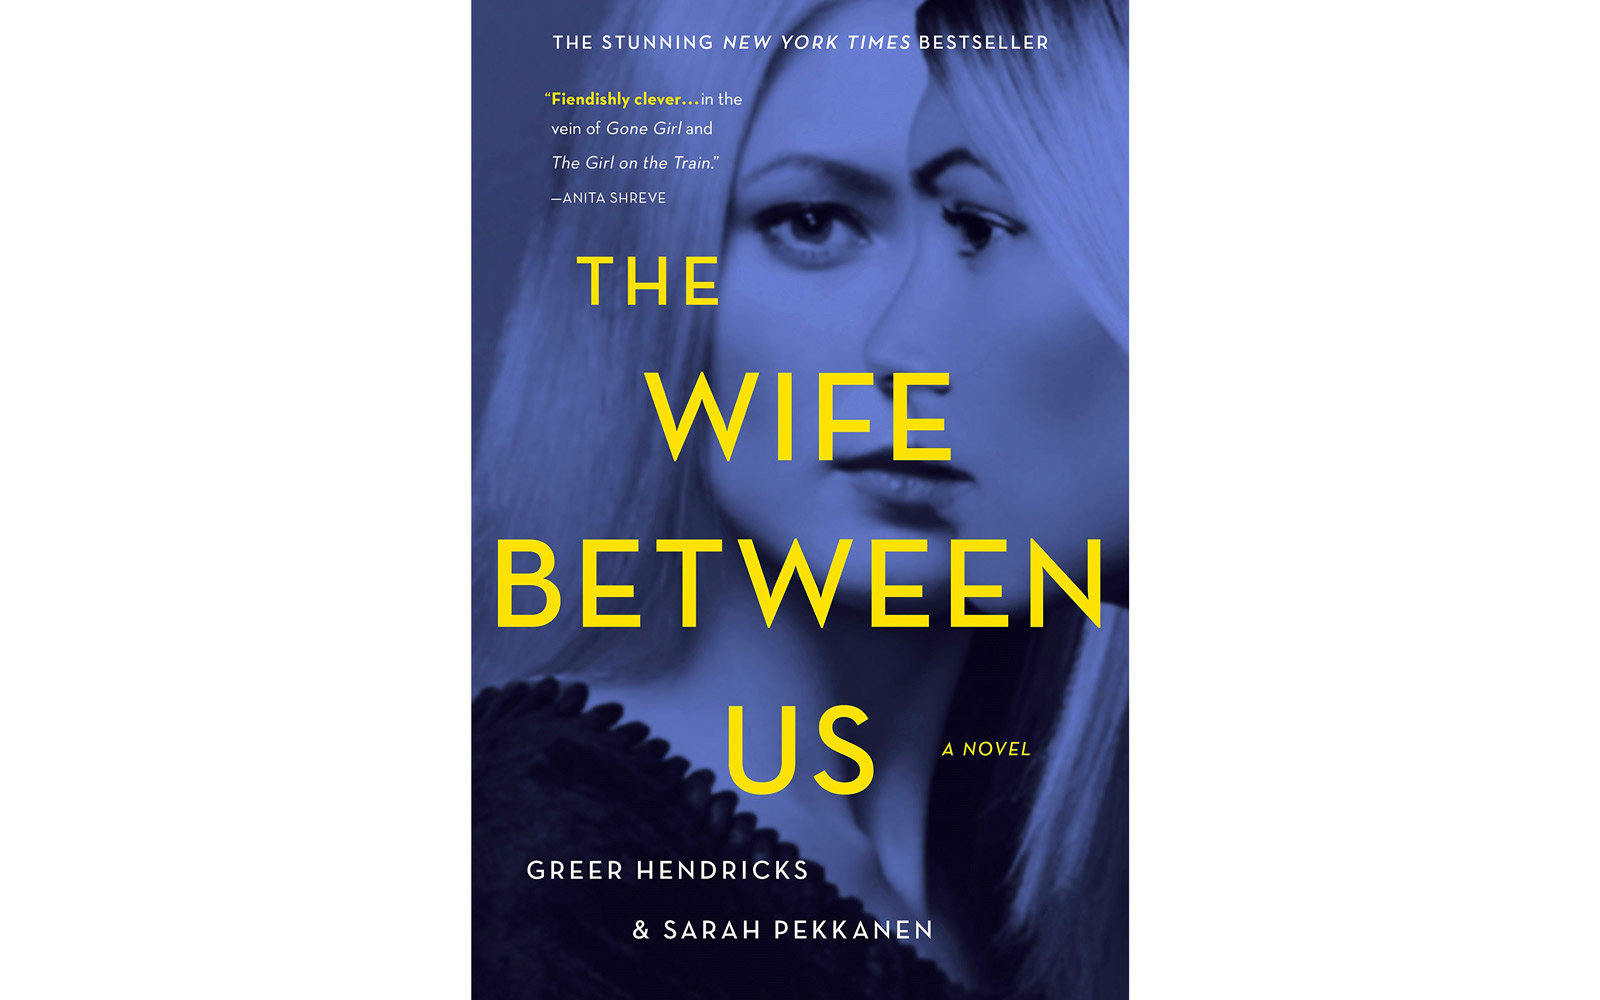 'The Wife Between Us' by Greer Hendricks and Sarah Pekkanen